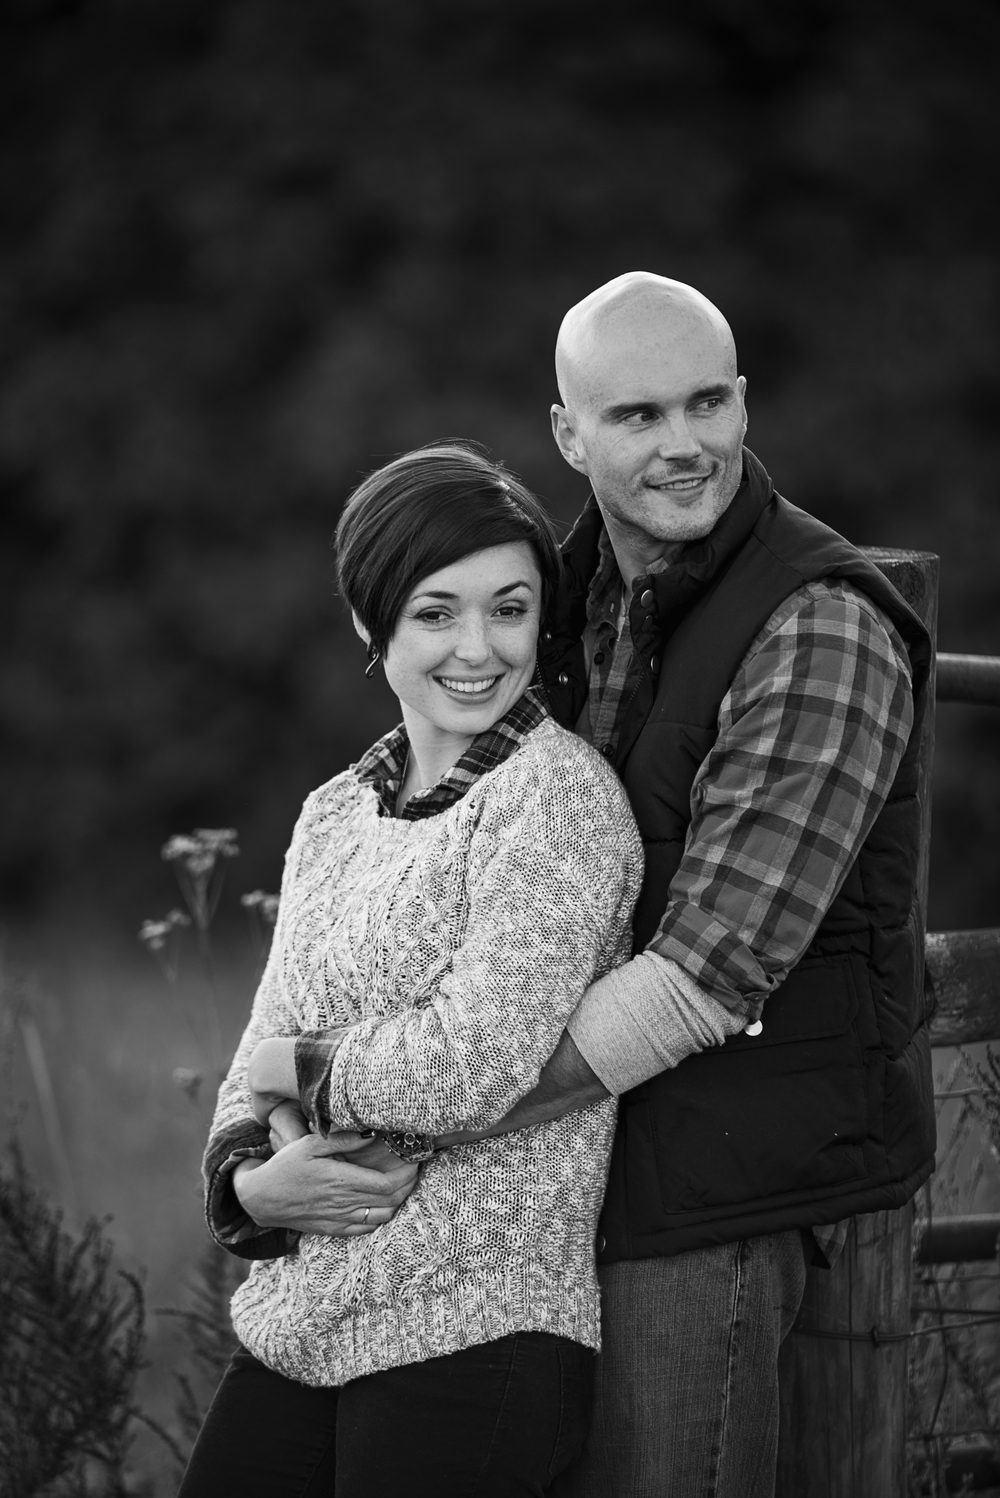 romantic_fall_field_engagement_session_lynchburg_va014.jpg